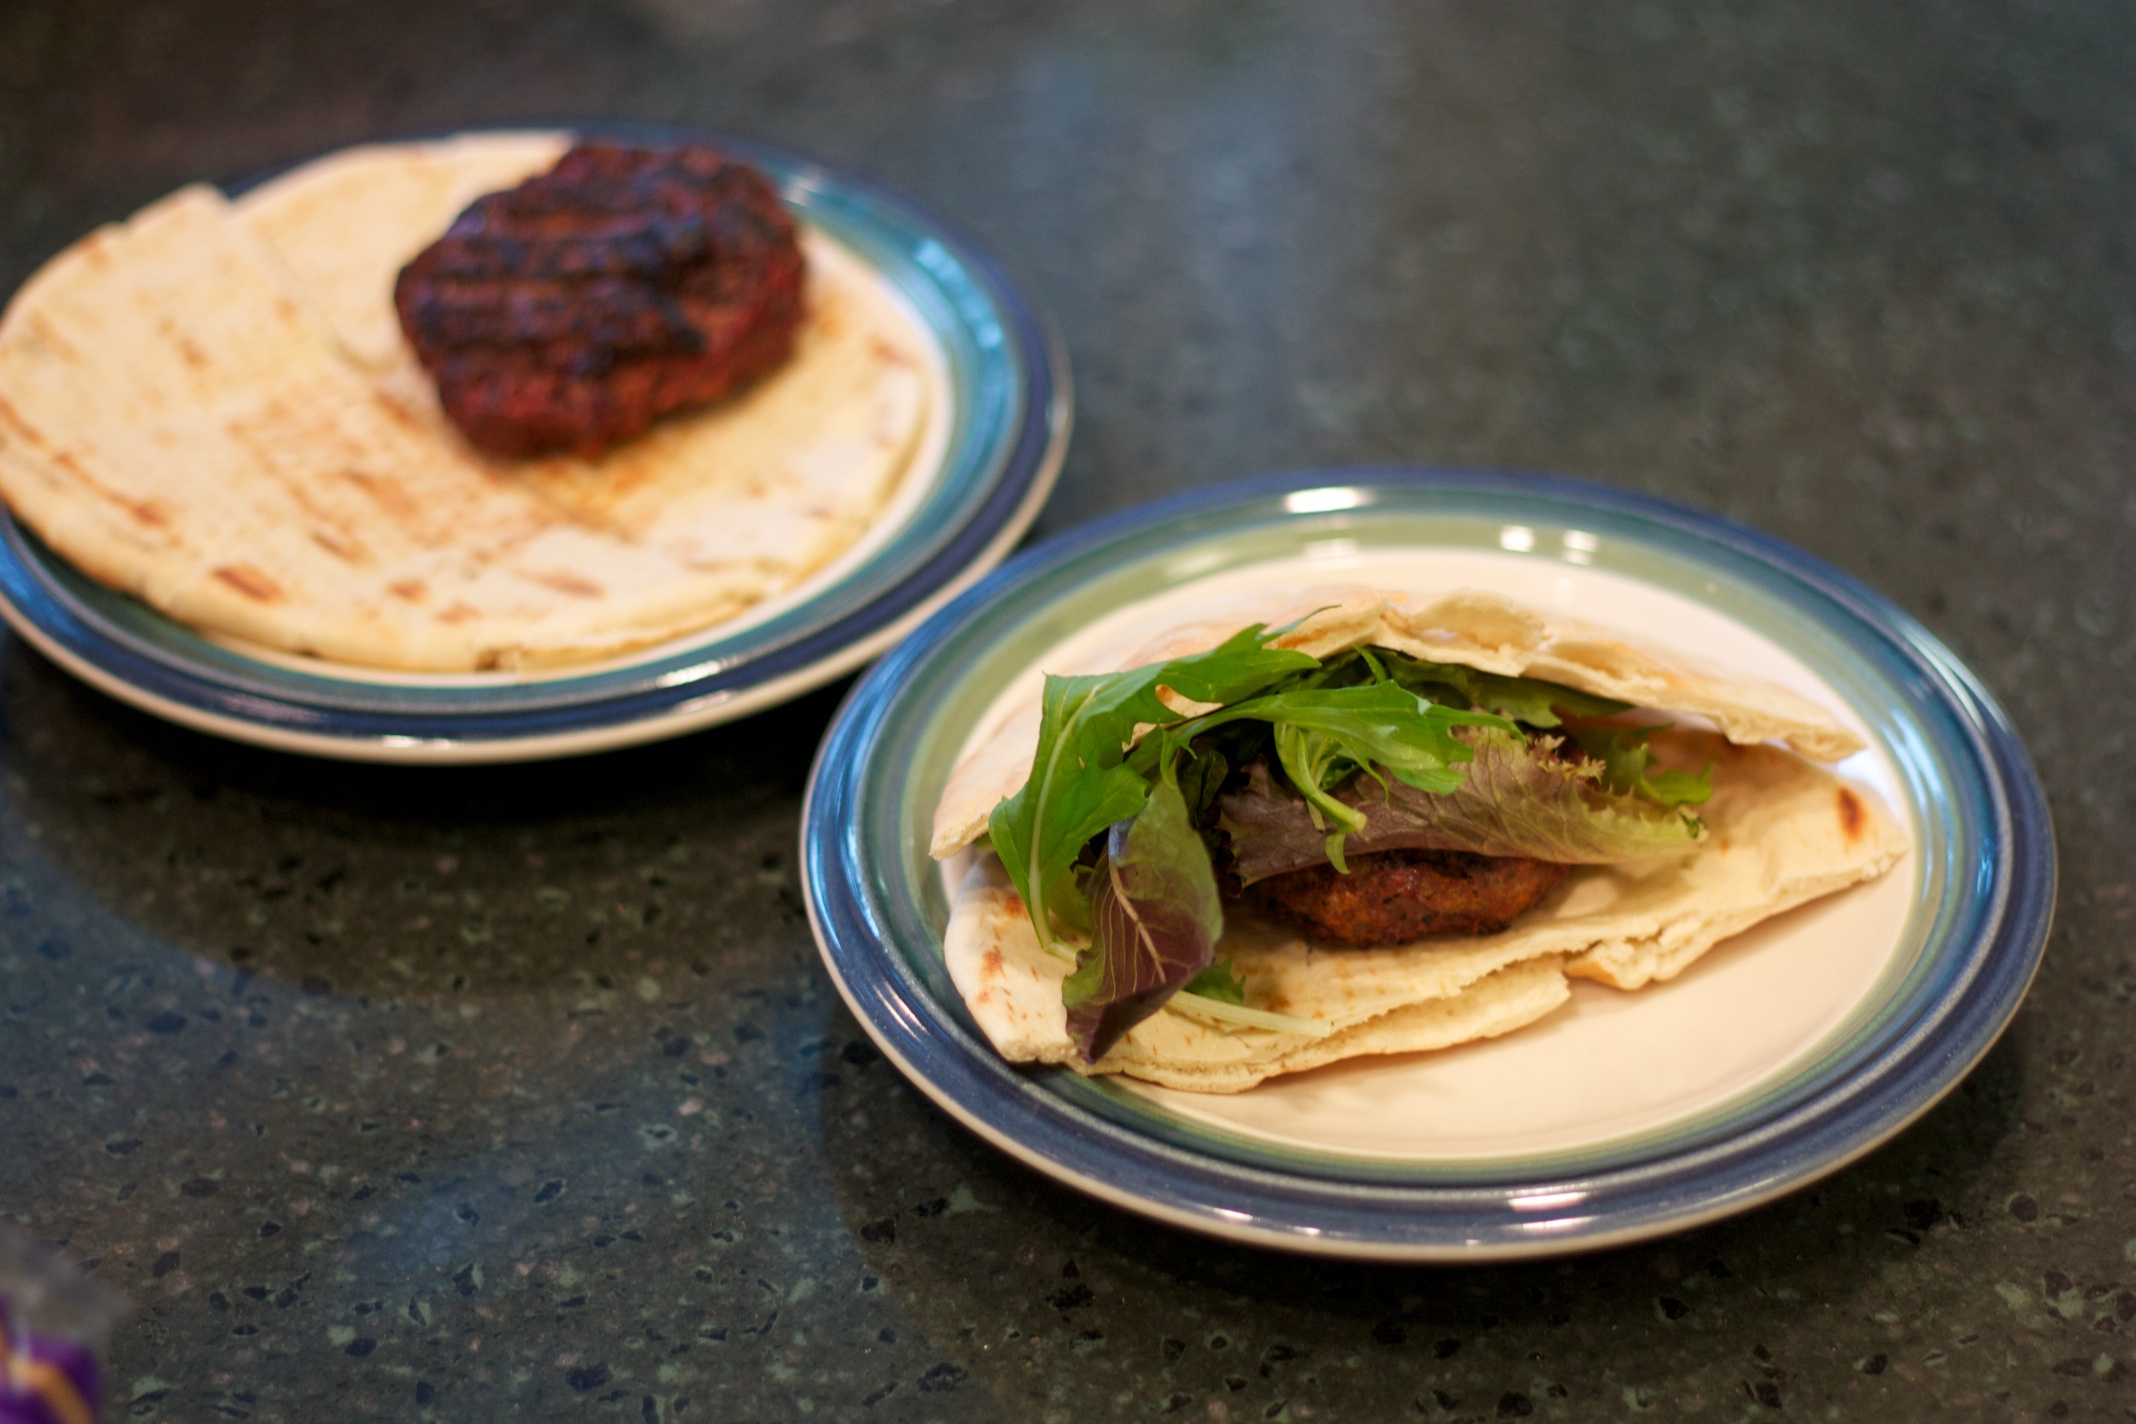 Thursday Dinner: Cavender's Lamb Burgers